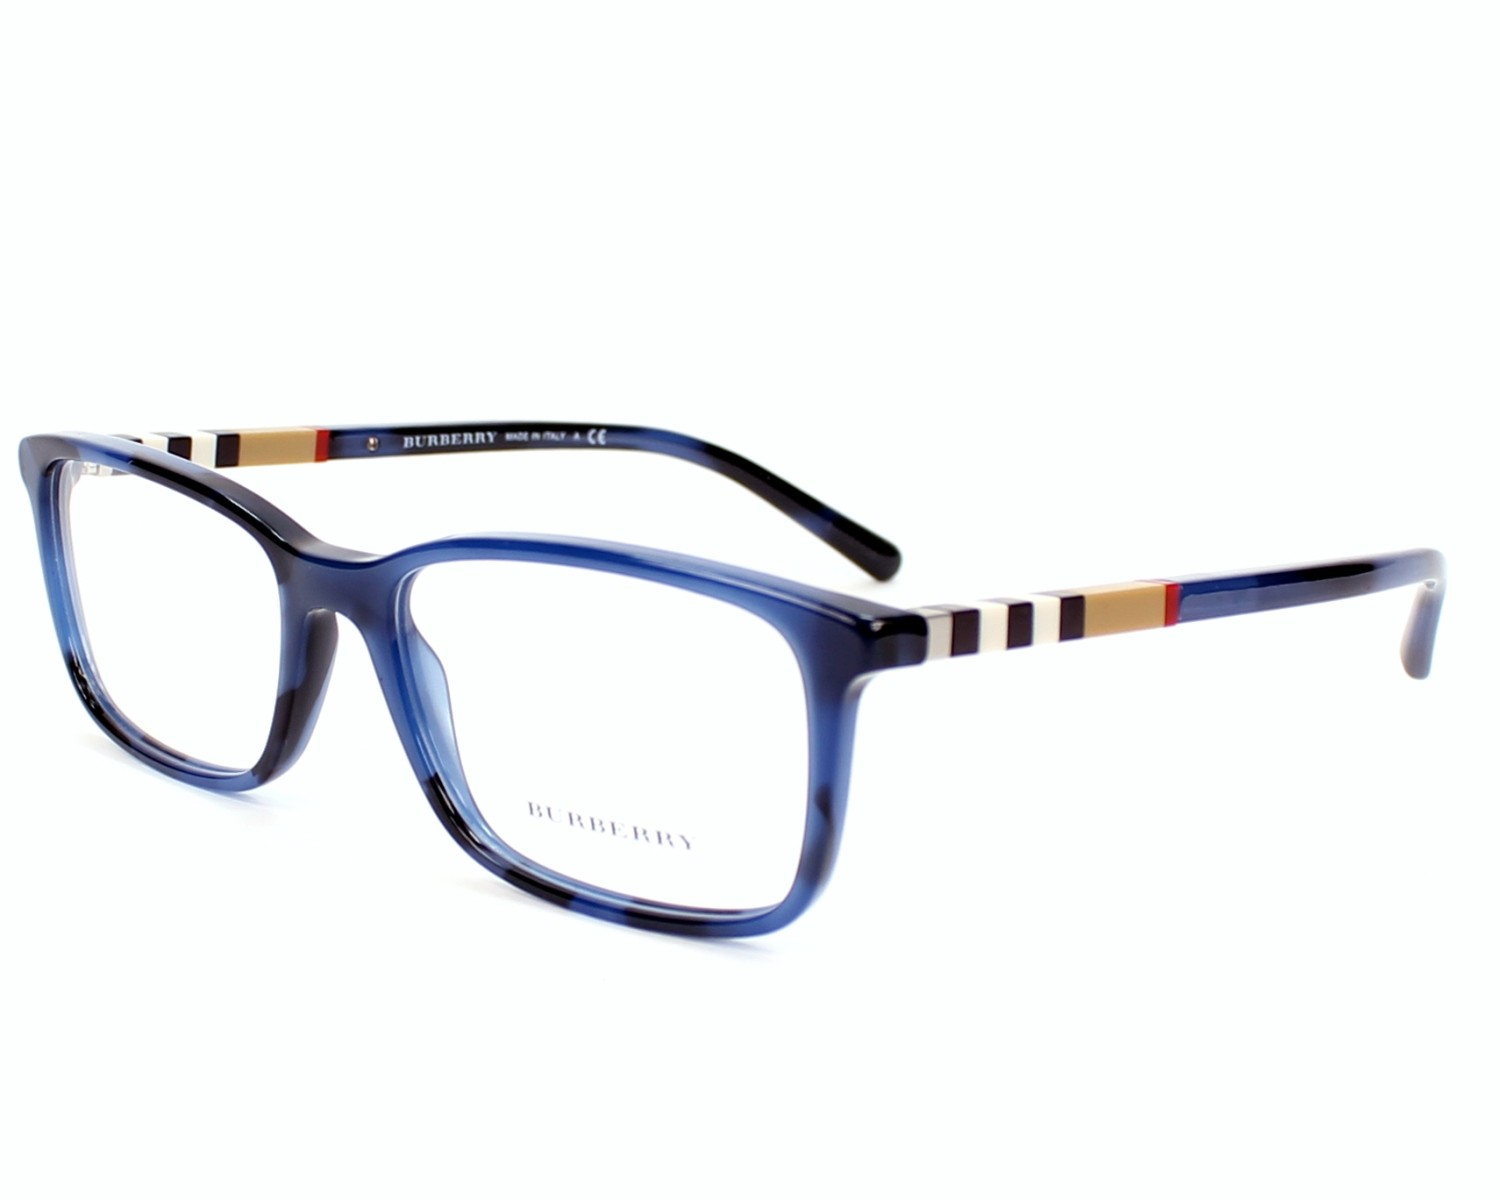 45784a58d002 Blue Burberry Sunglasses « One More Soul